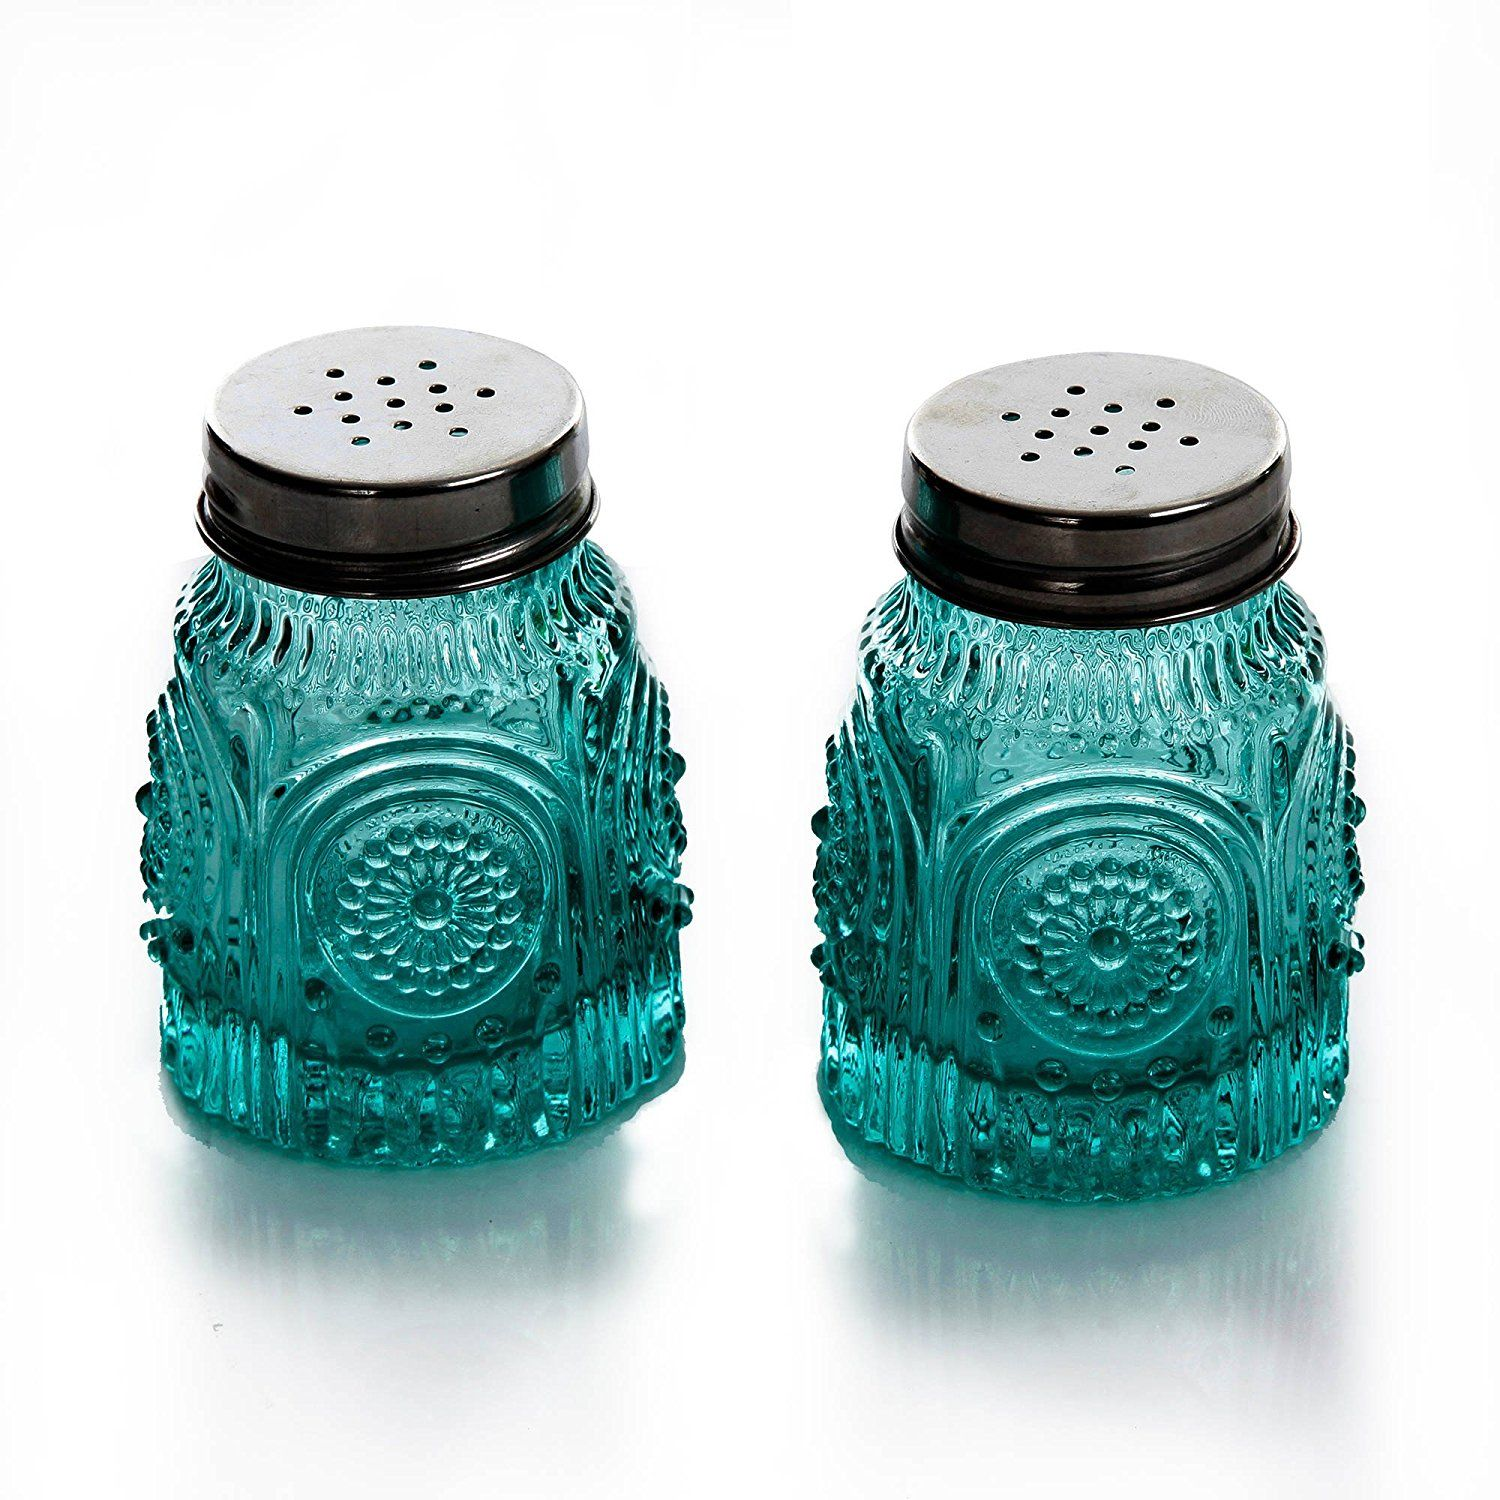 Amazon.com: The Pioneer Woman Adeline Teal Pressed Glass Salt and ...